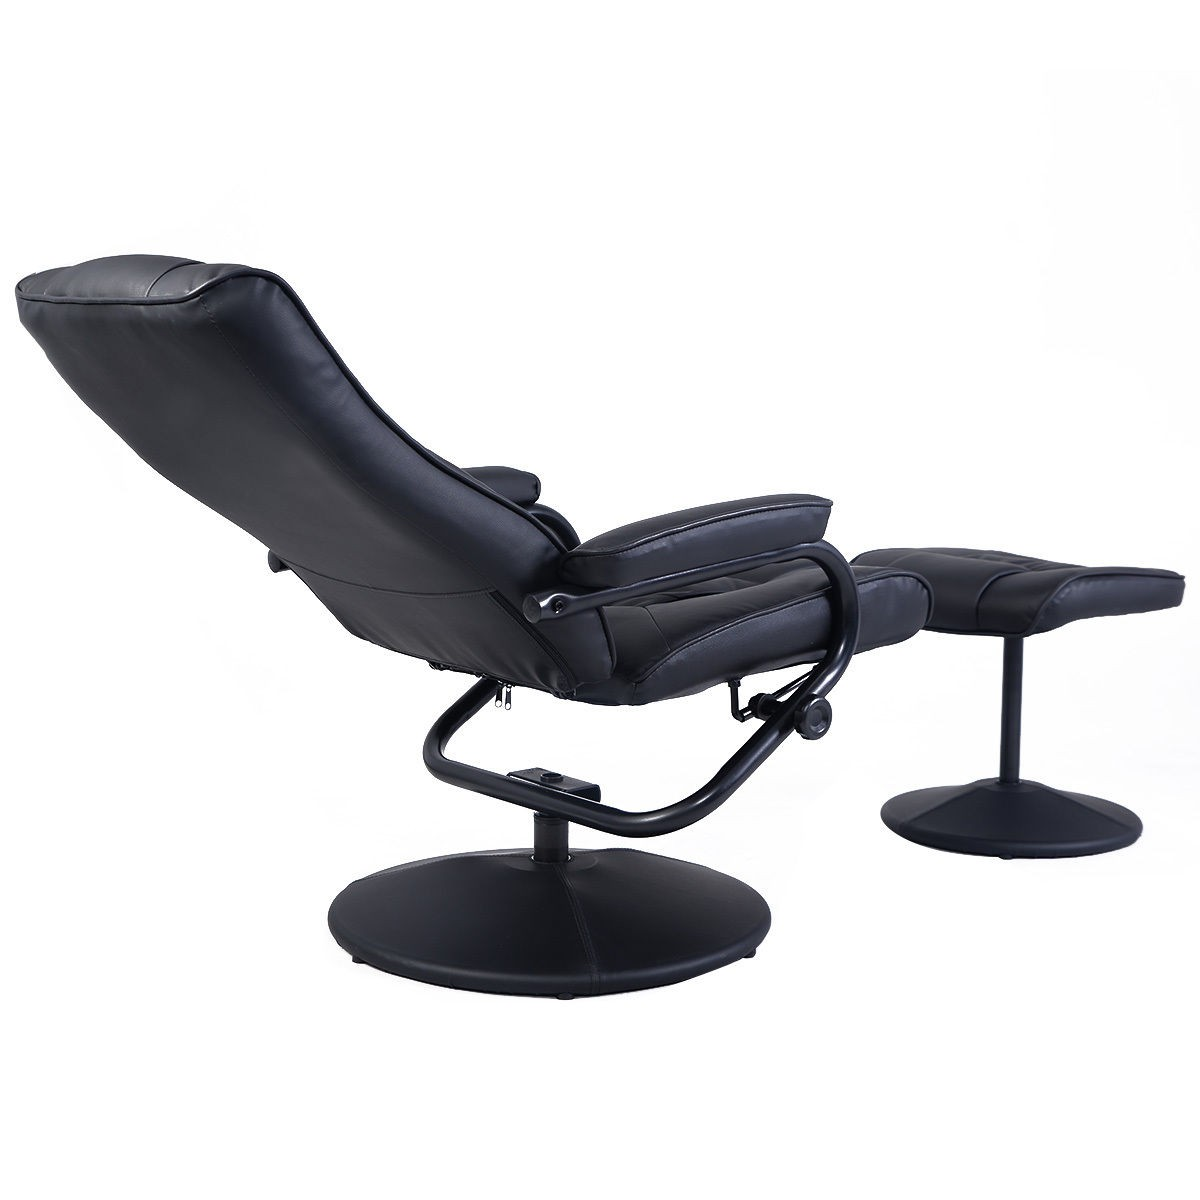 Leather recliner chair swivel armchair lounge seat with for Swivel club chair leather